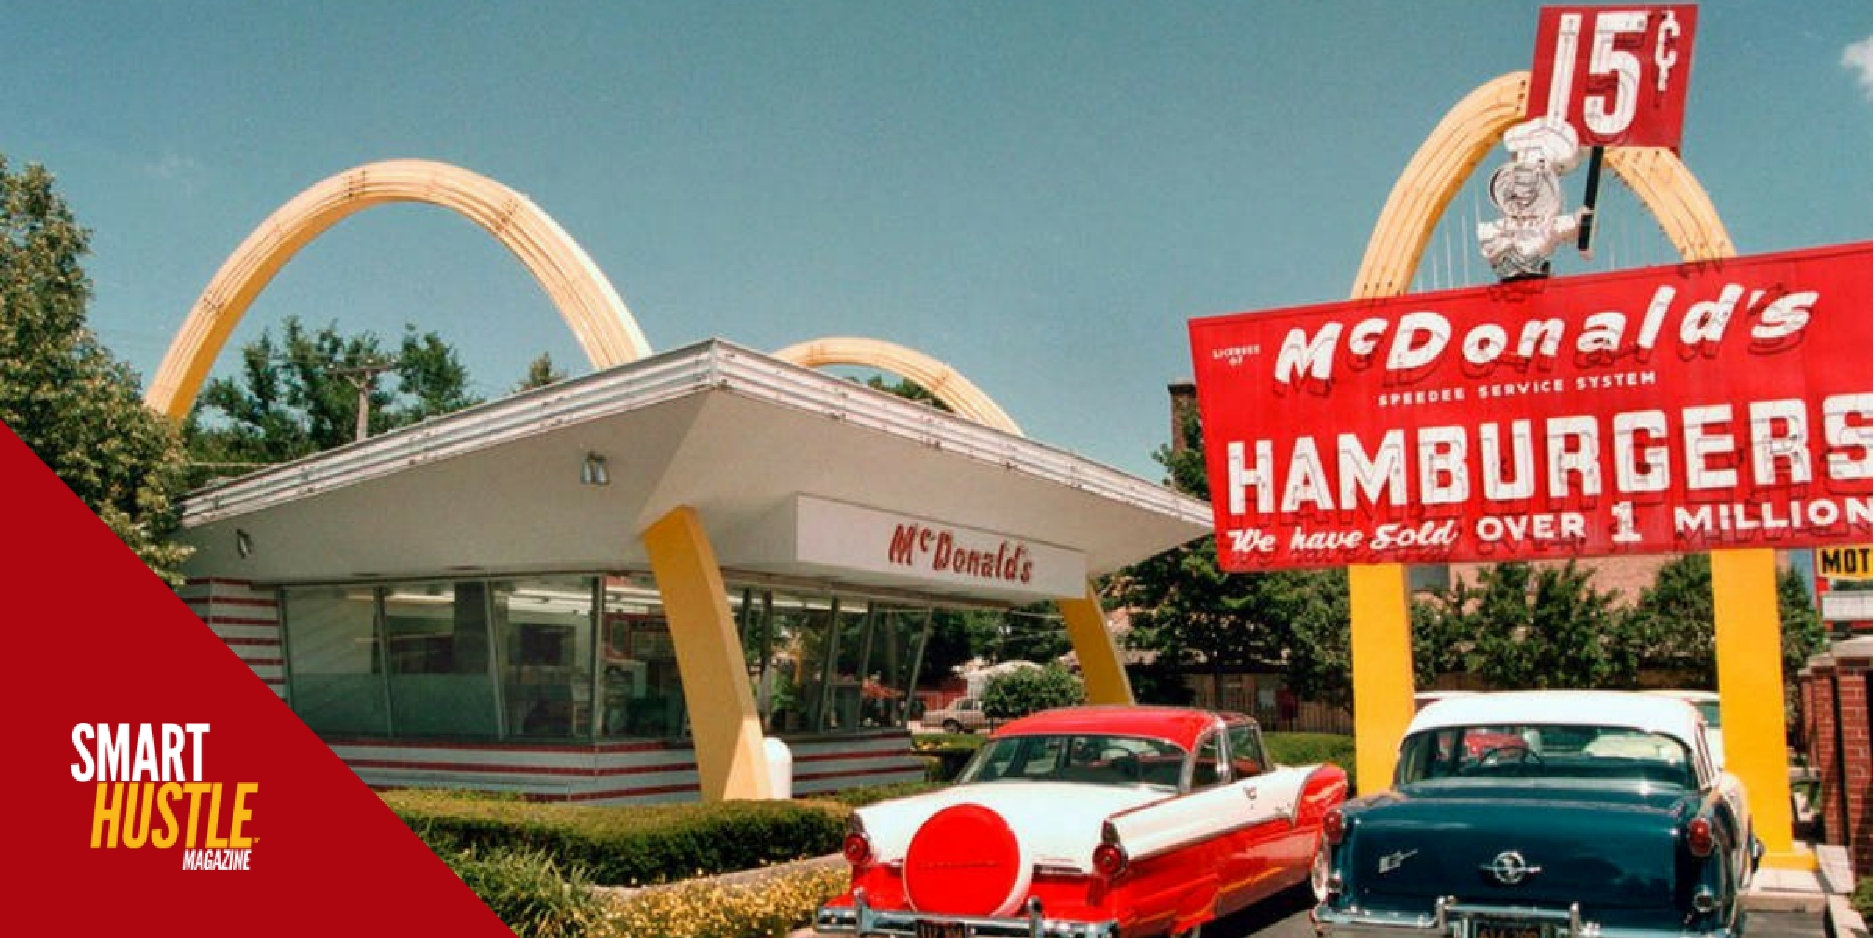 7 Business Lessons for Entrepreneurs from McDonald's and Ray Kroc